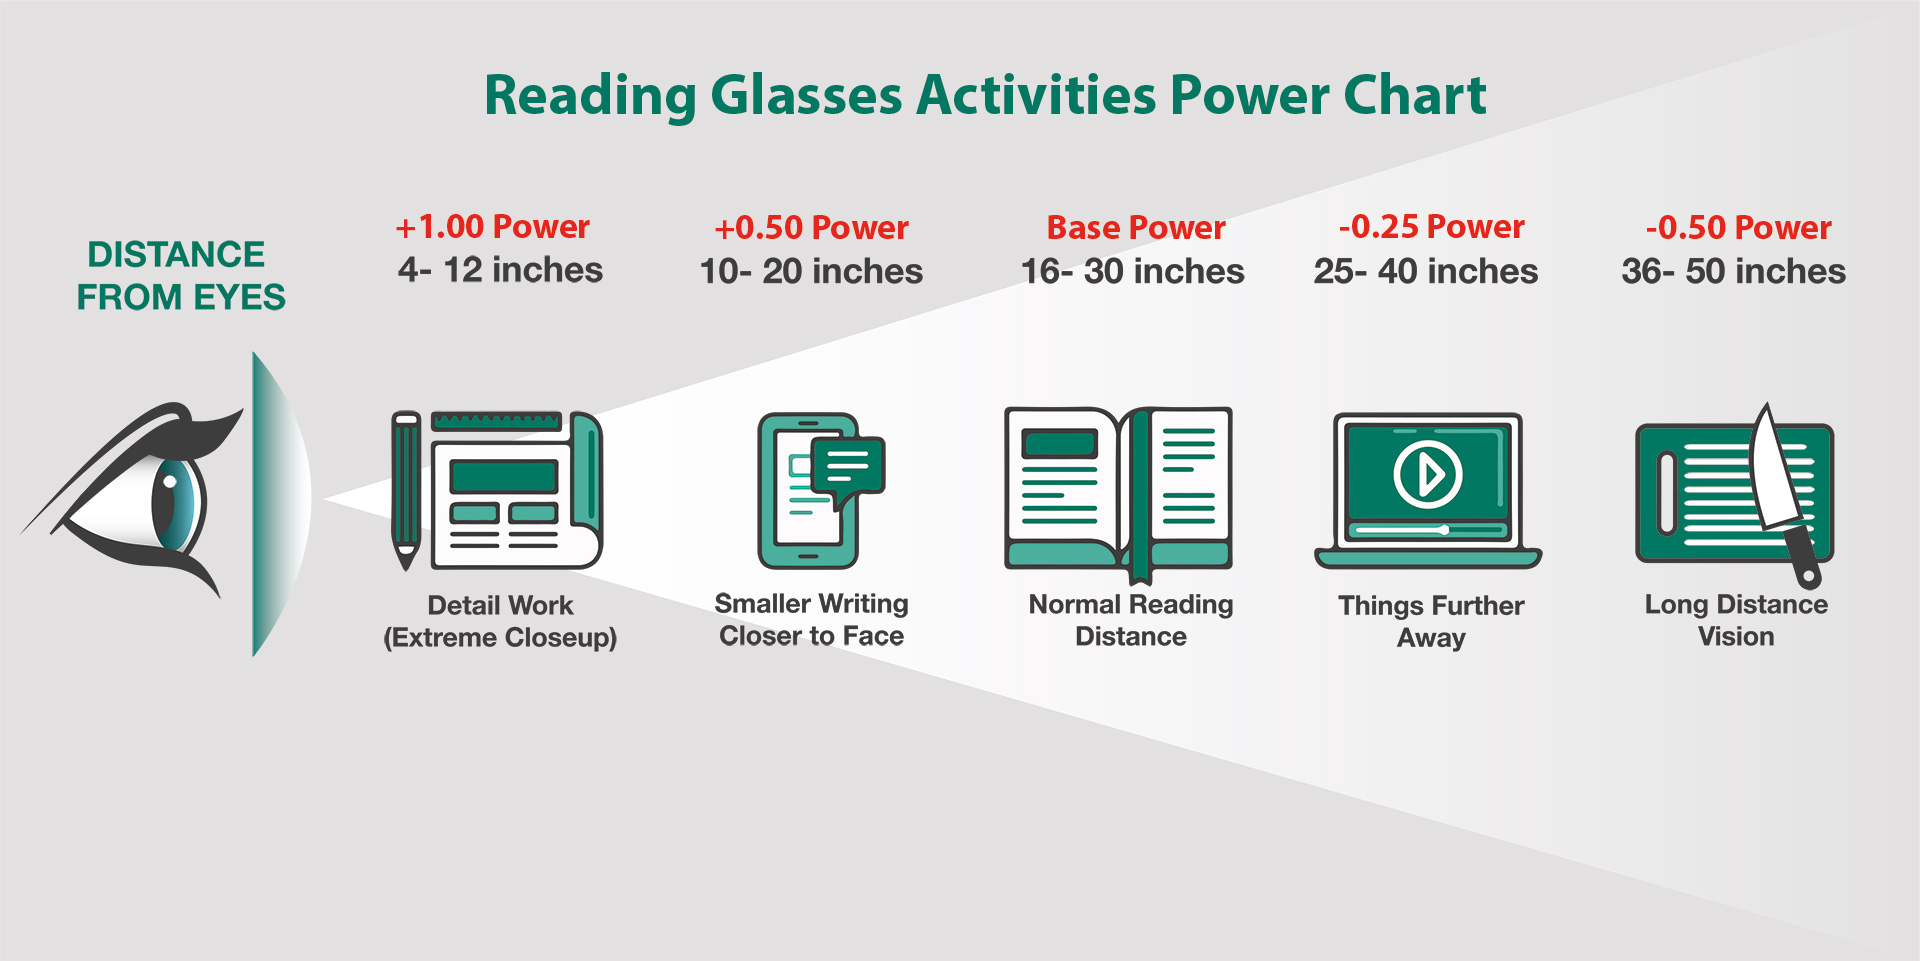 reading-glasses-activities-power-chart.jpg